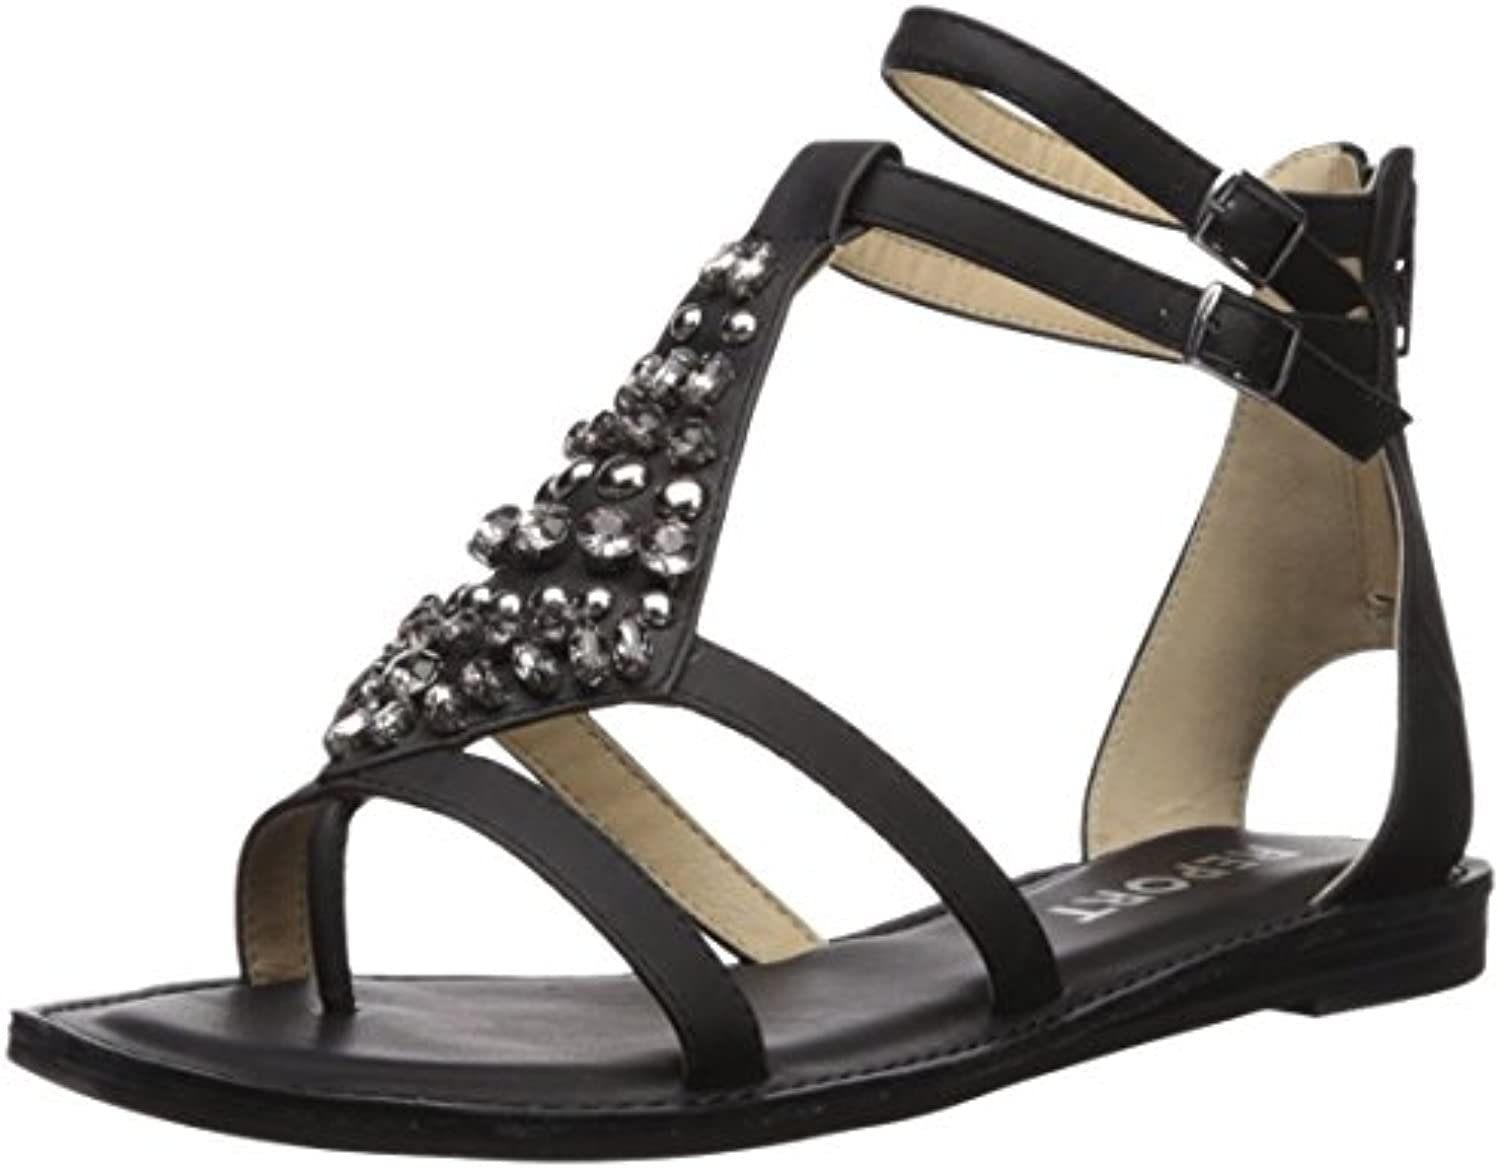 Mans Womans Excellent Report Womens Quinta Clindamy 25265 Sandal Inside Sandals Jaylinn Navy B0756nx18d Parent Adequate Supply And Timely Delivery Affordable